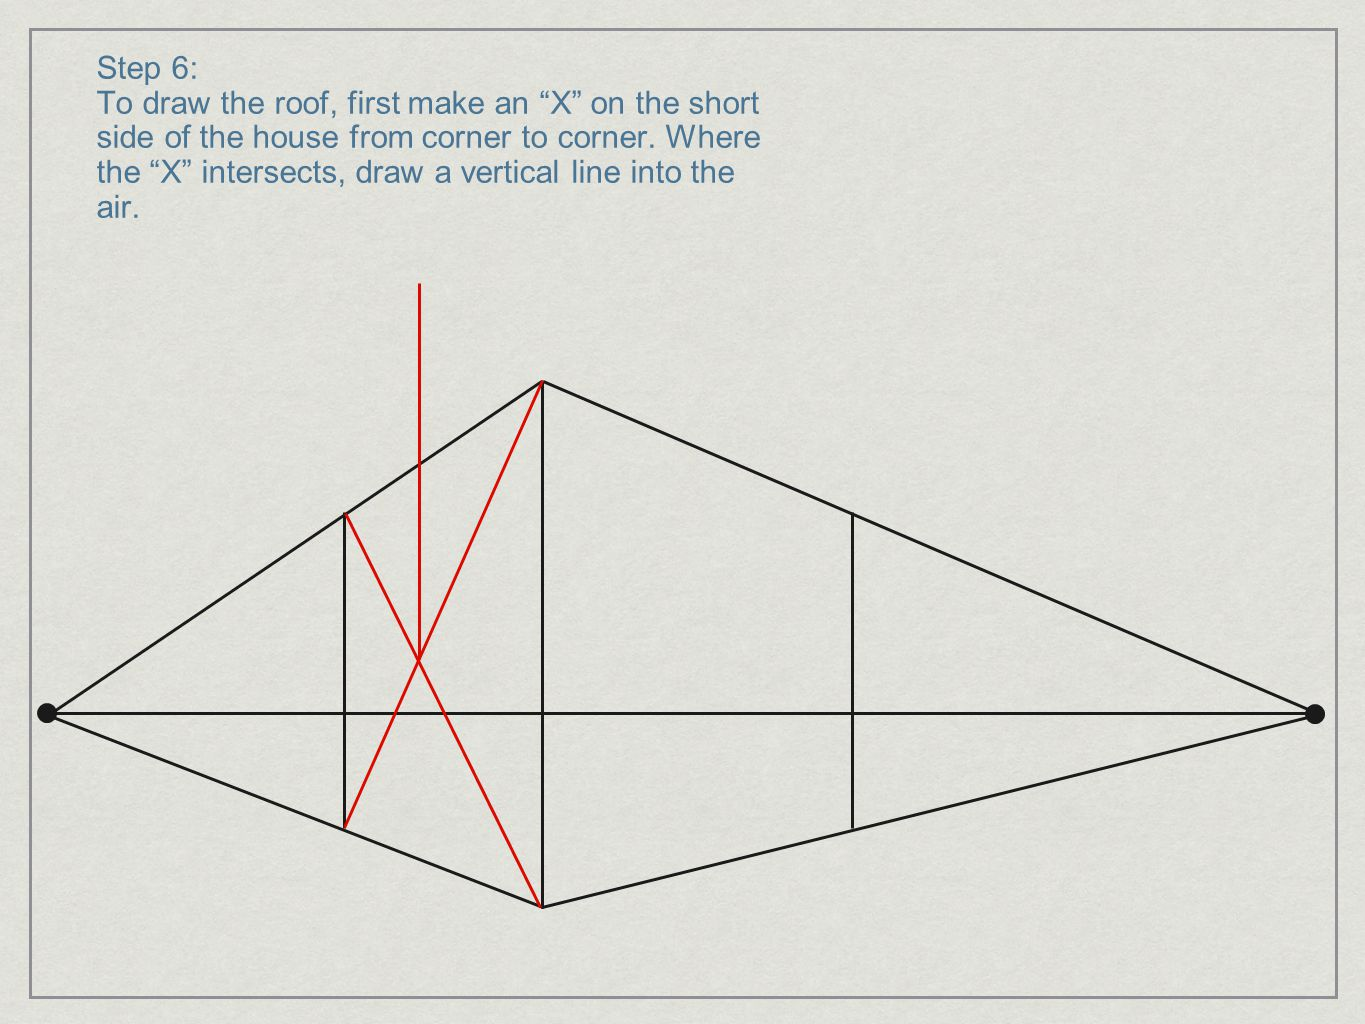 """Step 6: To draw the roof, first make an """"X"""" on the short side of the house from corner to corner. Where the """"X"""" intersects, draw a vertical line into"""